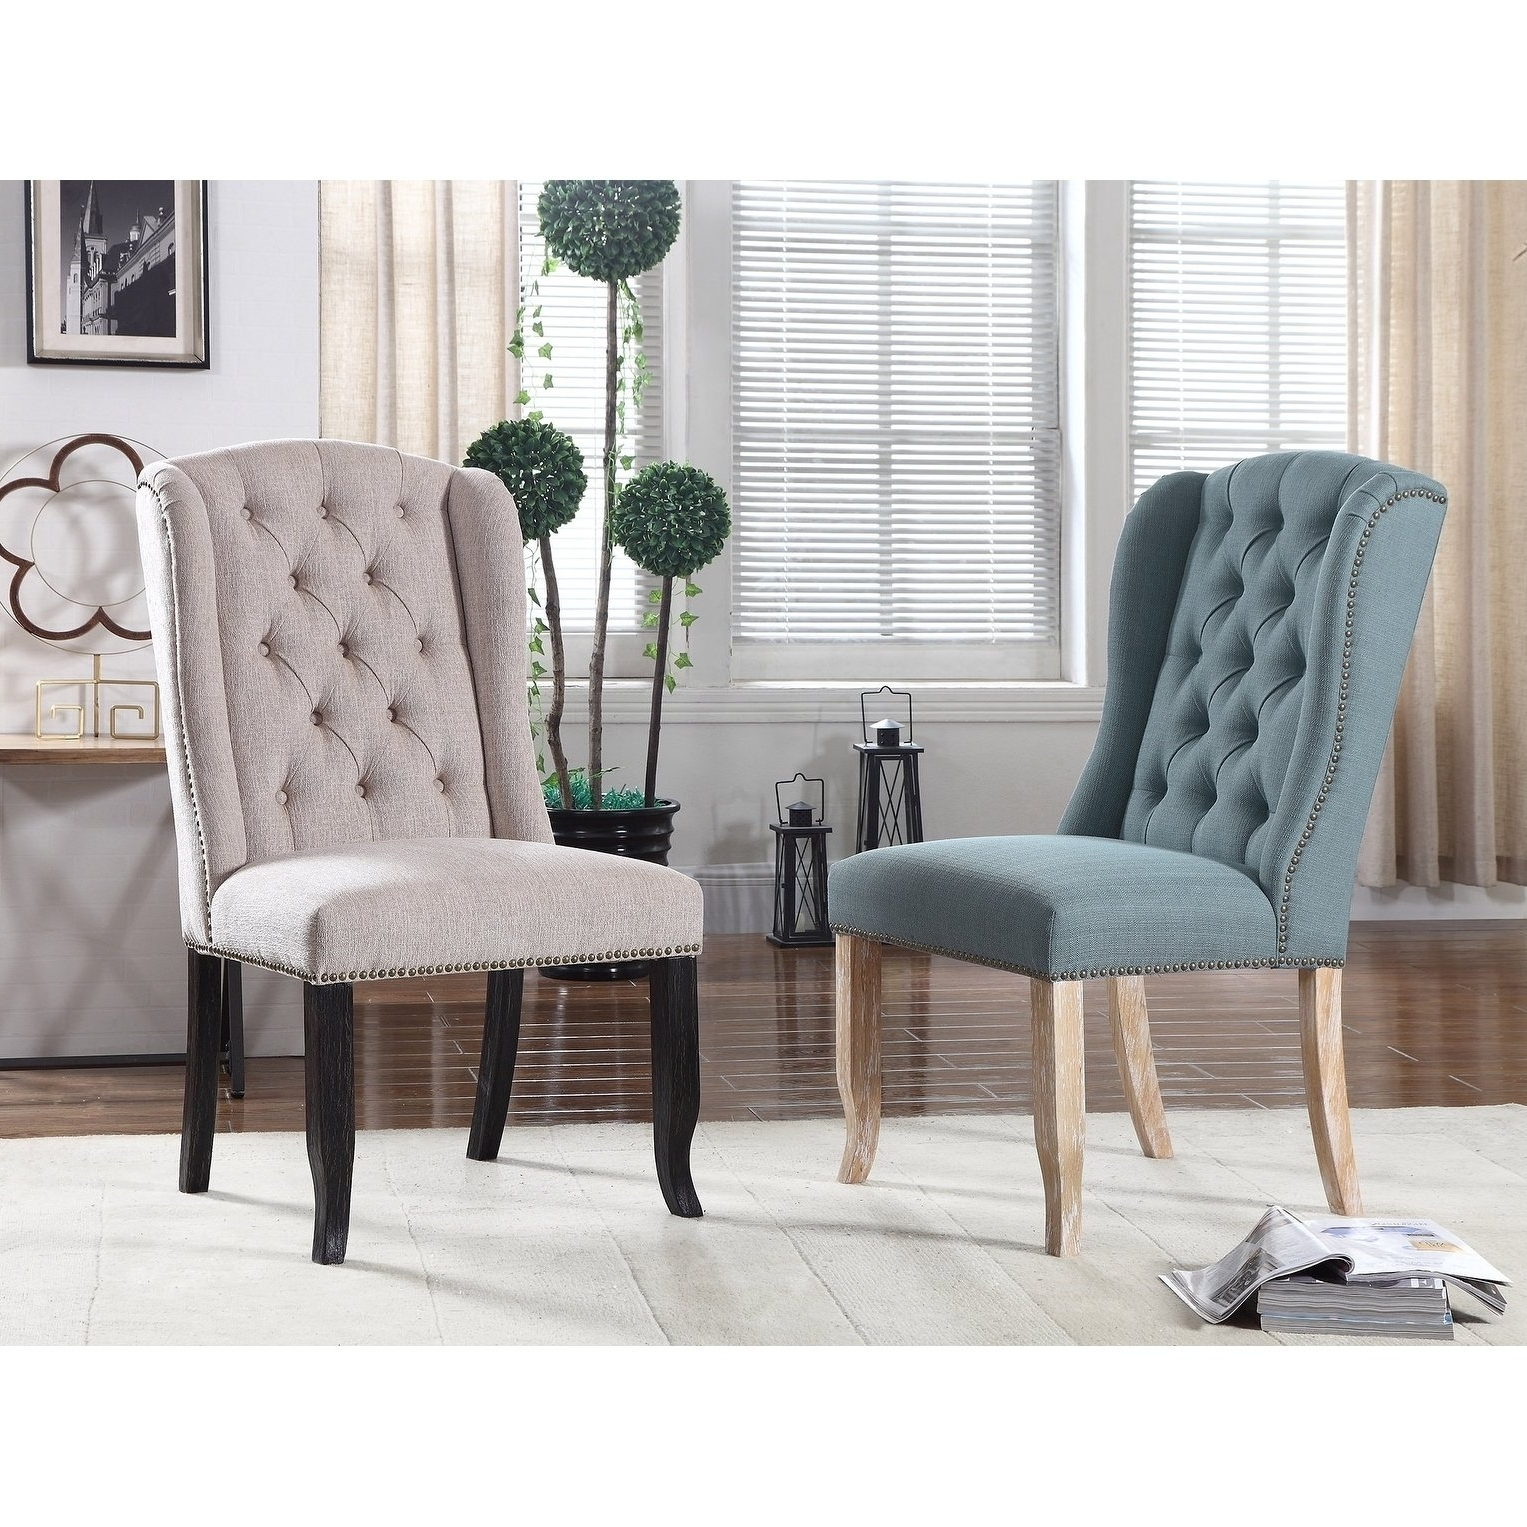 Caira Black Upholstered Side Chairs Pertaining To Most Recent Shop Best Master Furniture Upholstered Wingback Side Chairs (set Of (View 20 of 20)